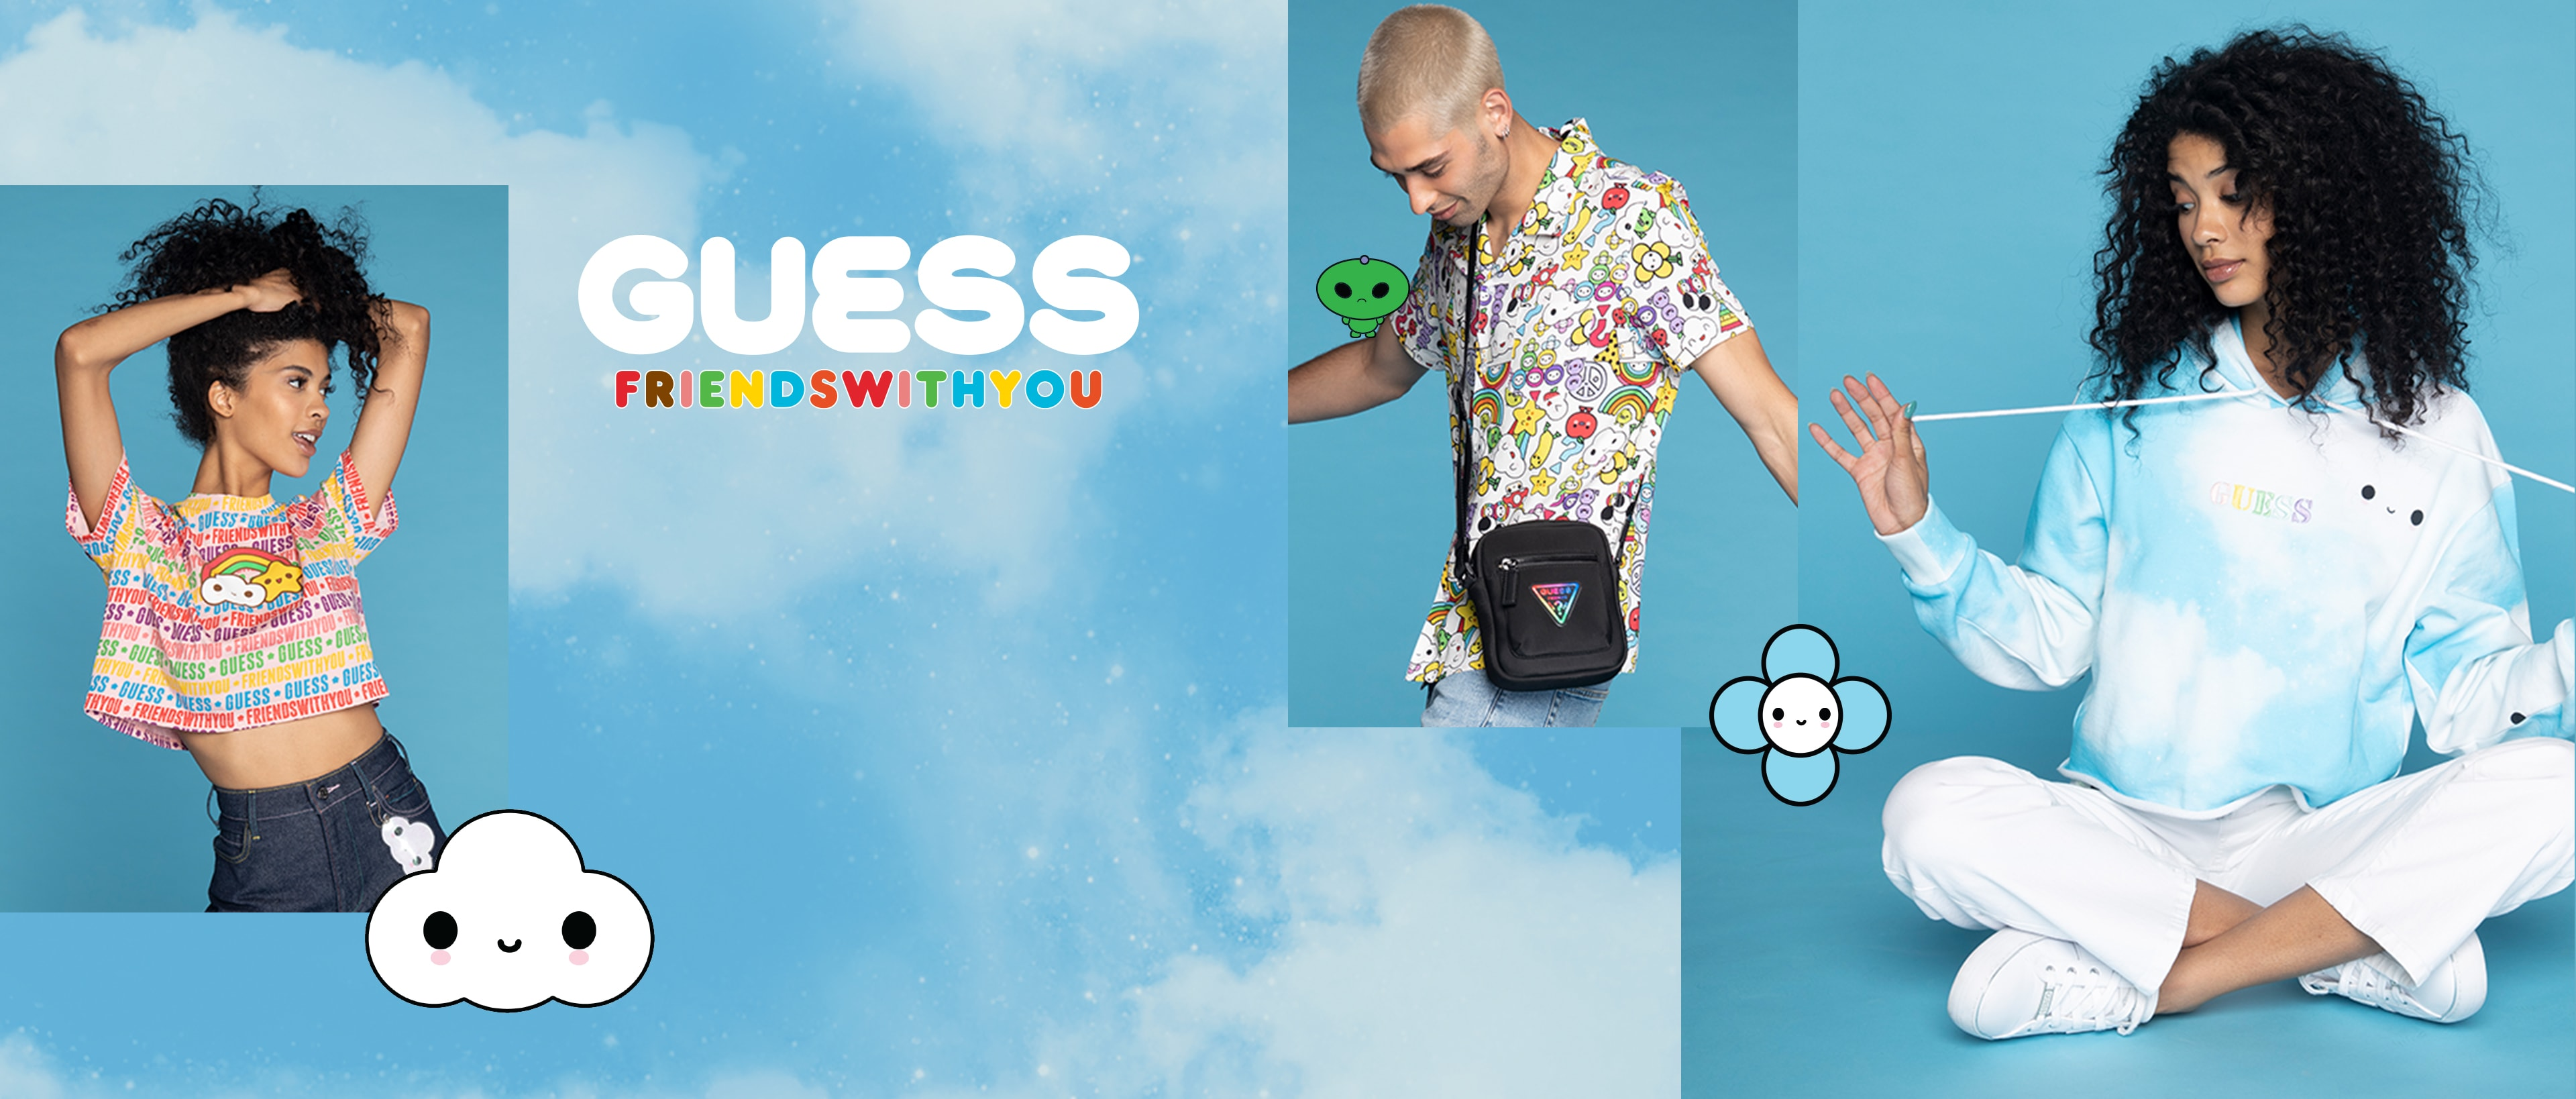 GUESS x FriendsWithYou World Happiness Tour